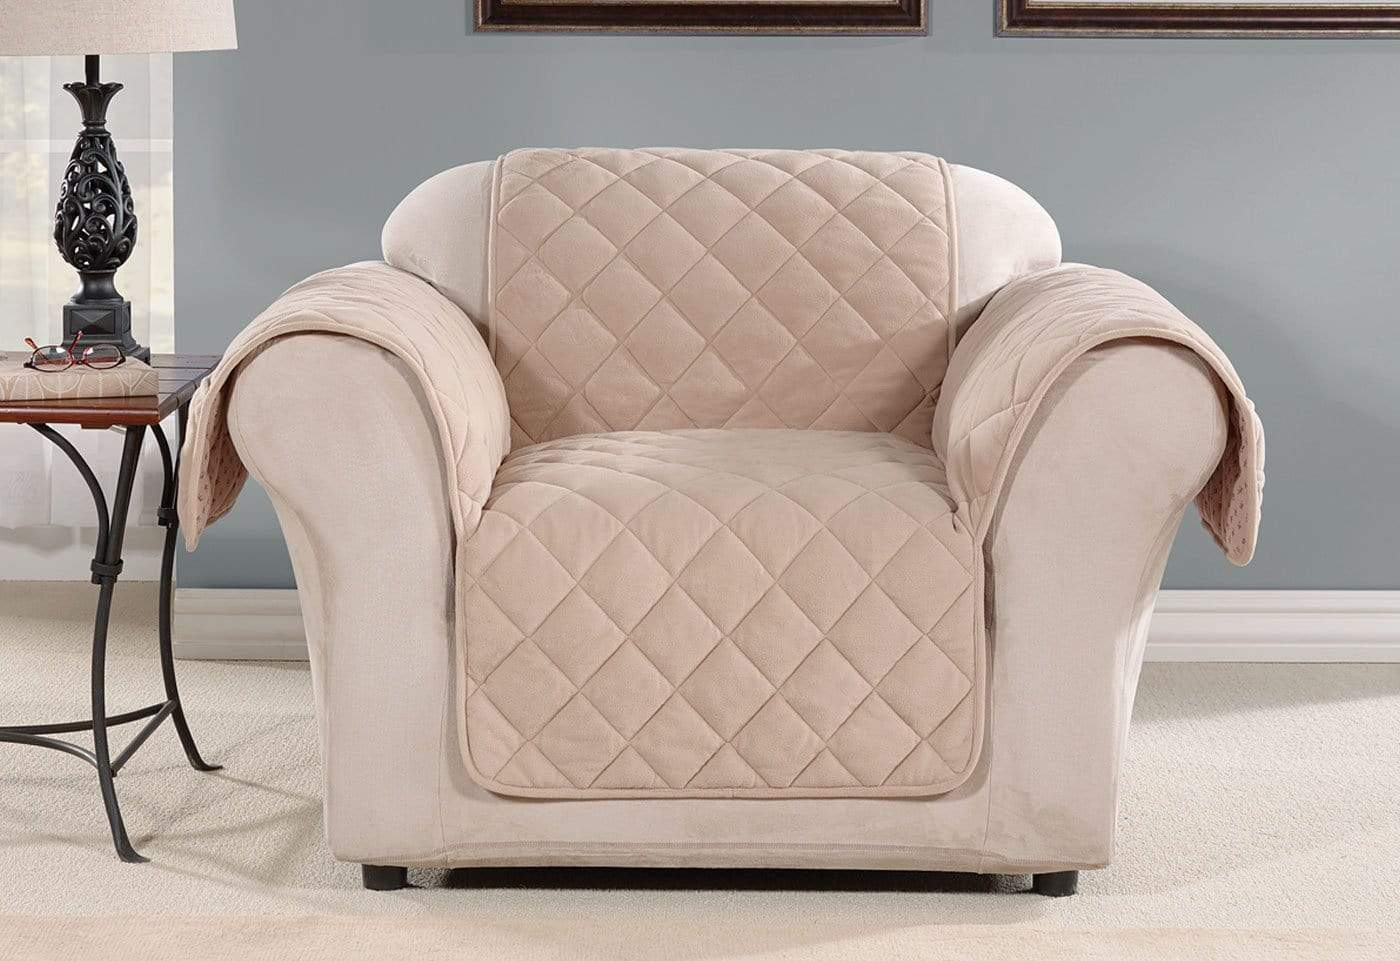 Oversized Microfleece Chair Furniture Cover Pet Furniture Cover Machine Washable - Chair / Taupe